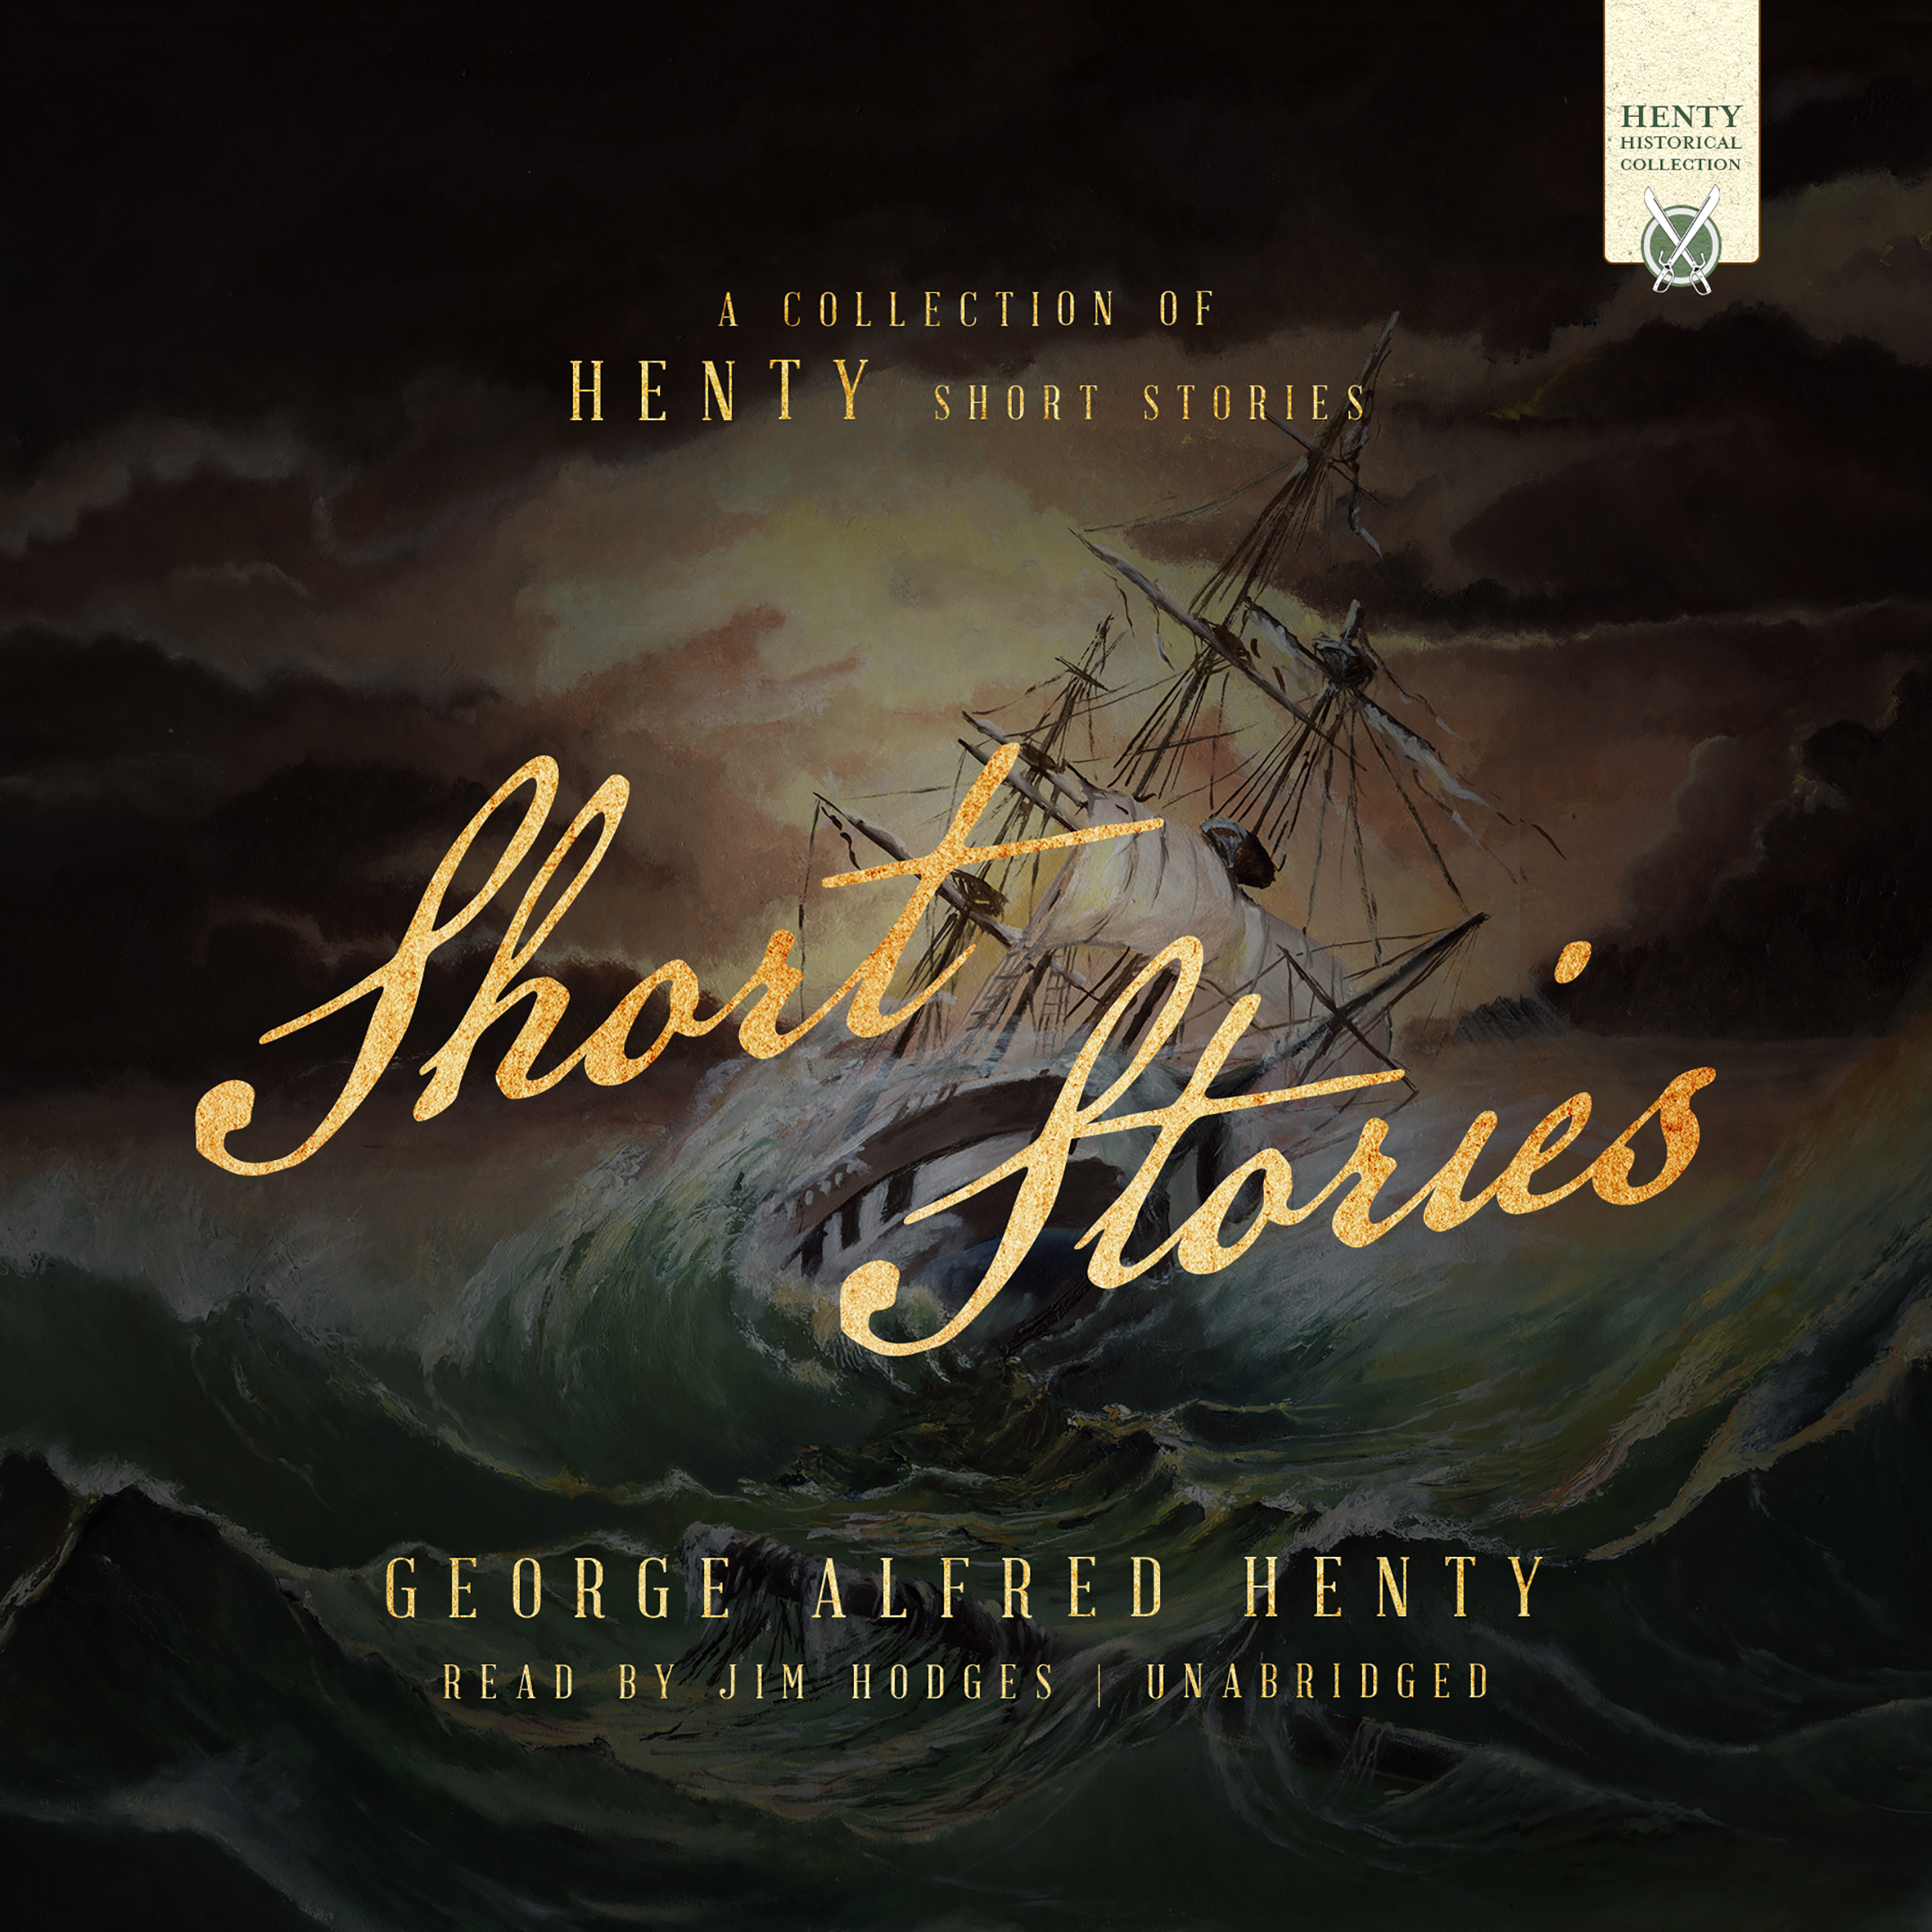 Printable Short Stories: A Collection of Henty Short Stories Audiobook Cover Art